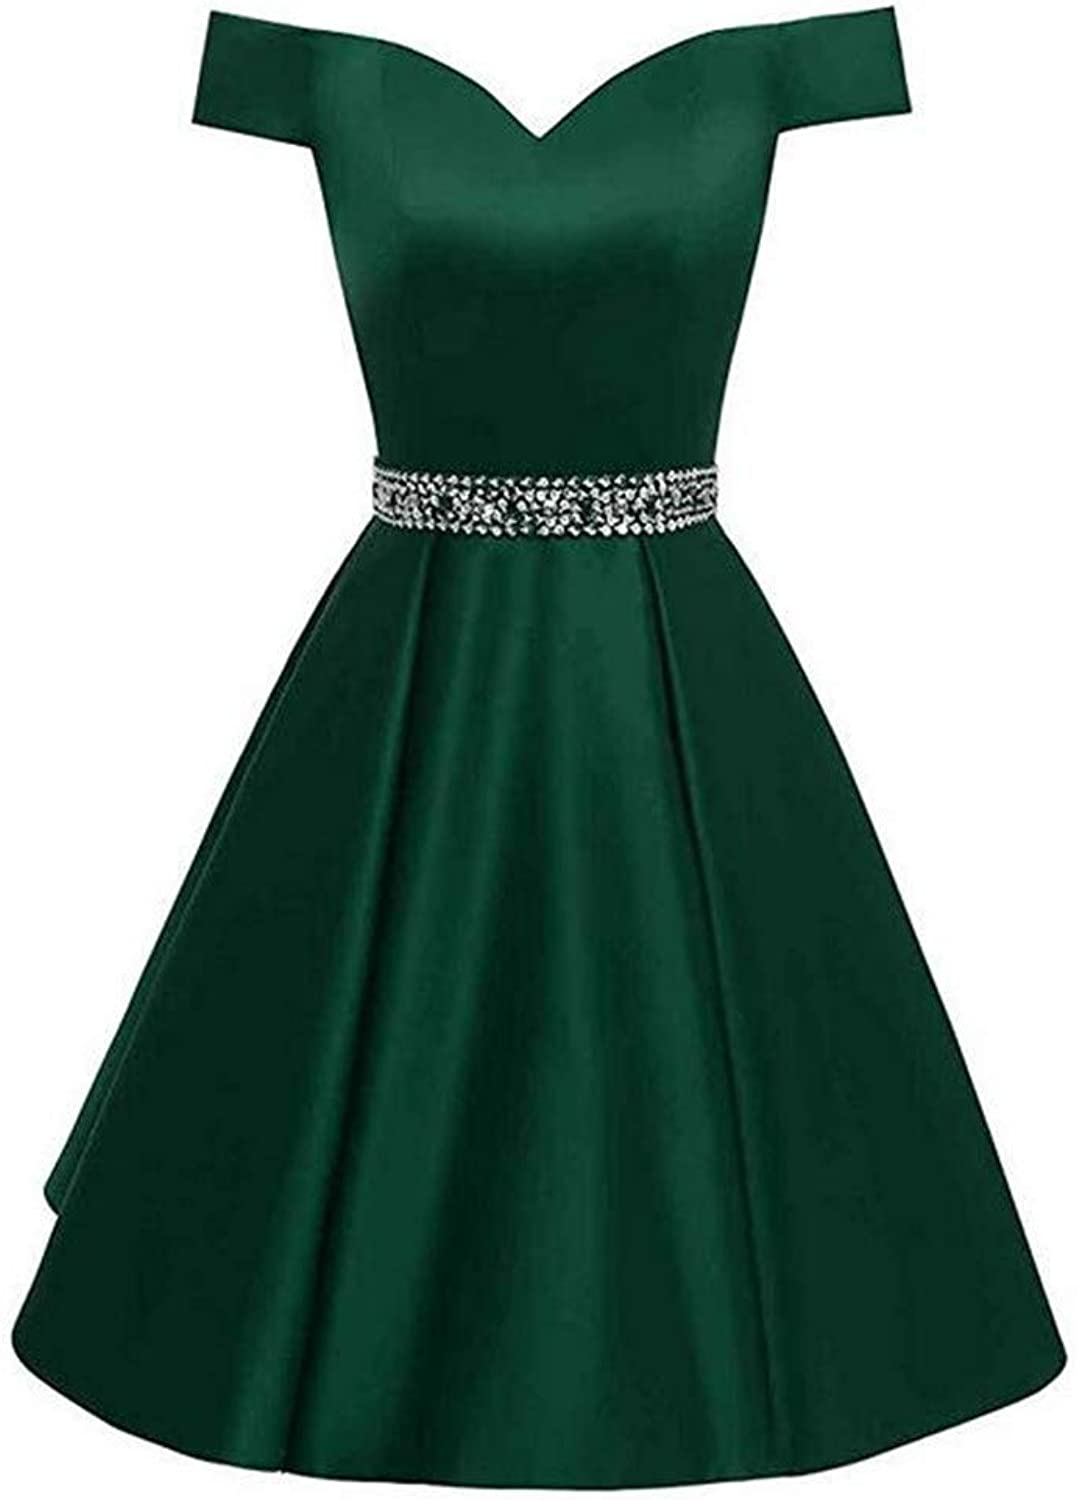 Emmani Women's V Neck Solid Beaded Short Prom Dresses Lace Up Back Homecoming Party Dress